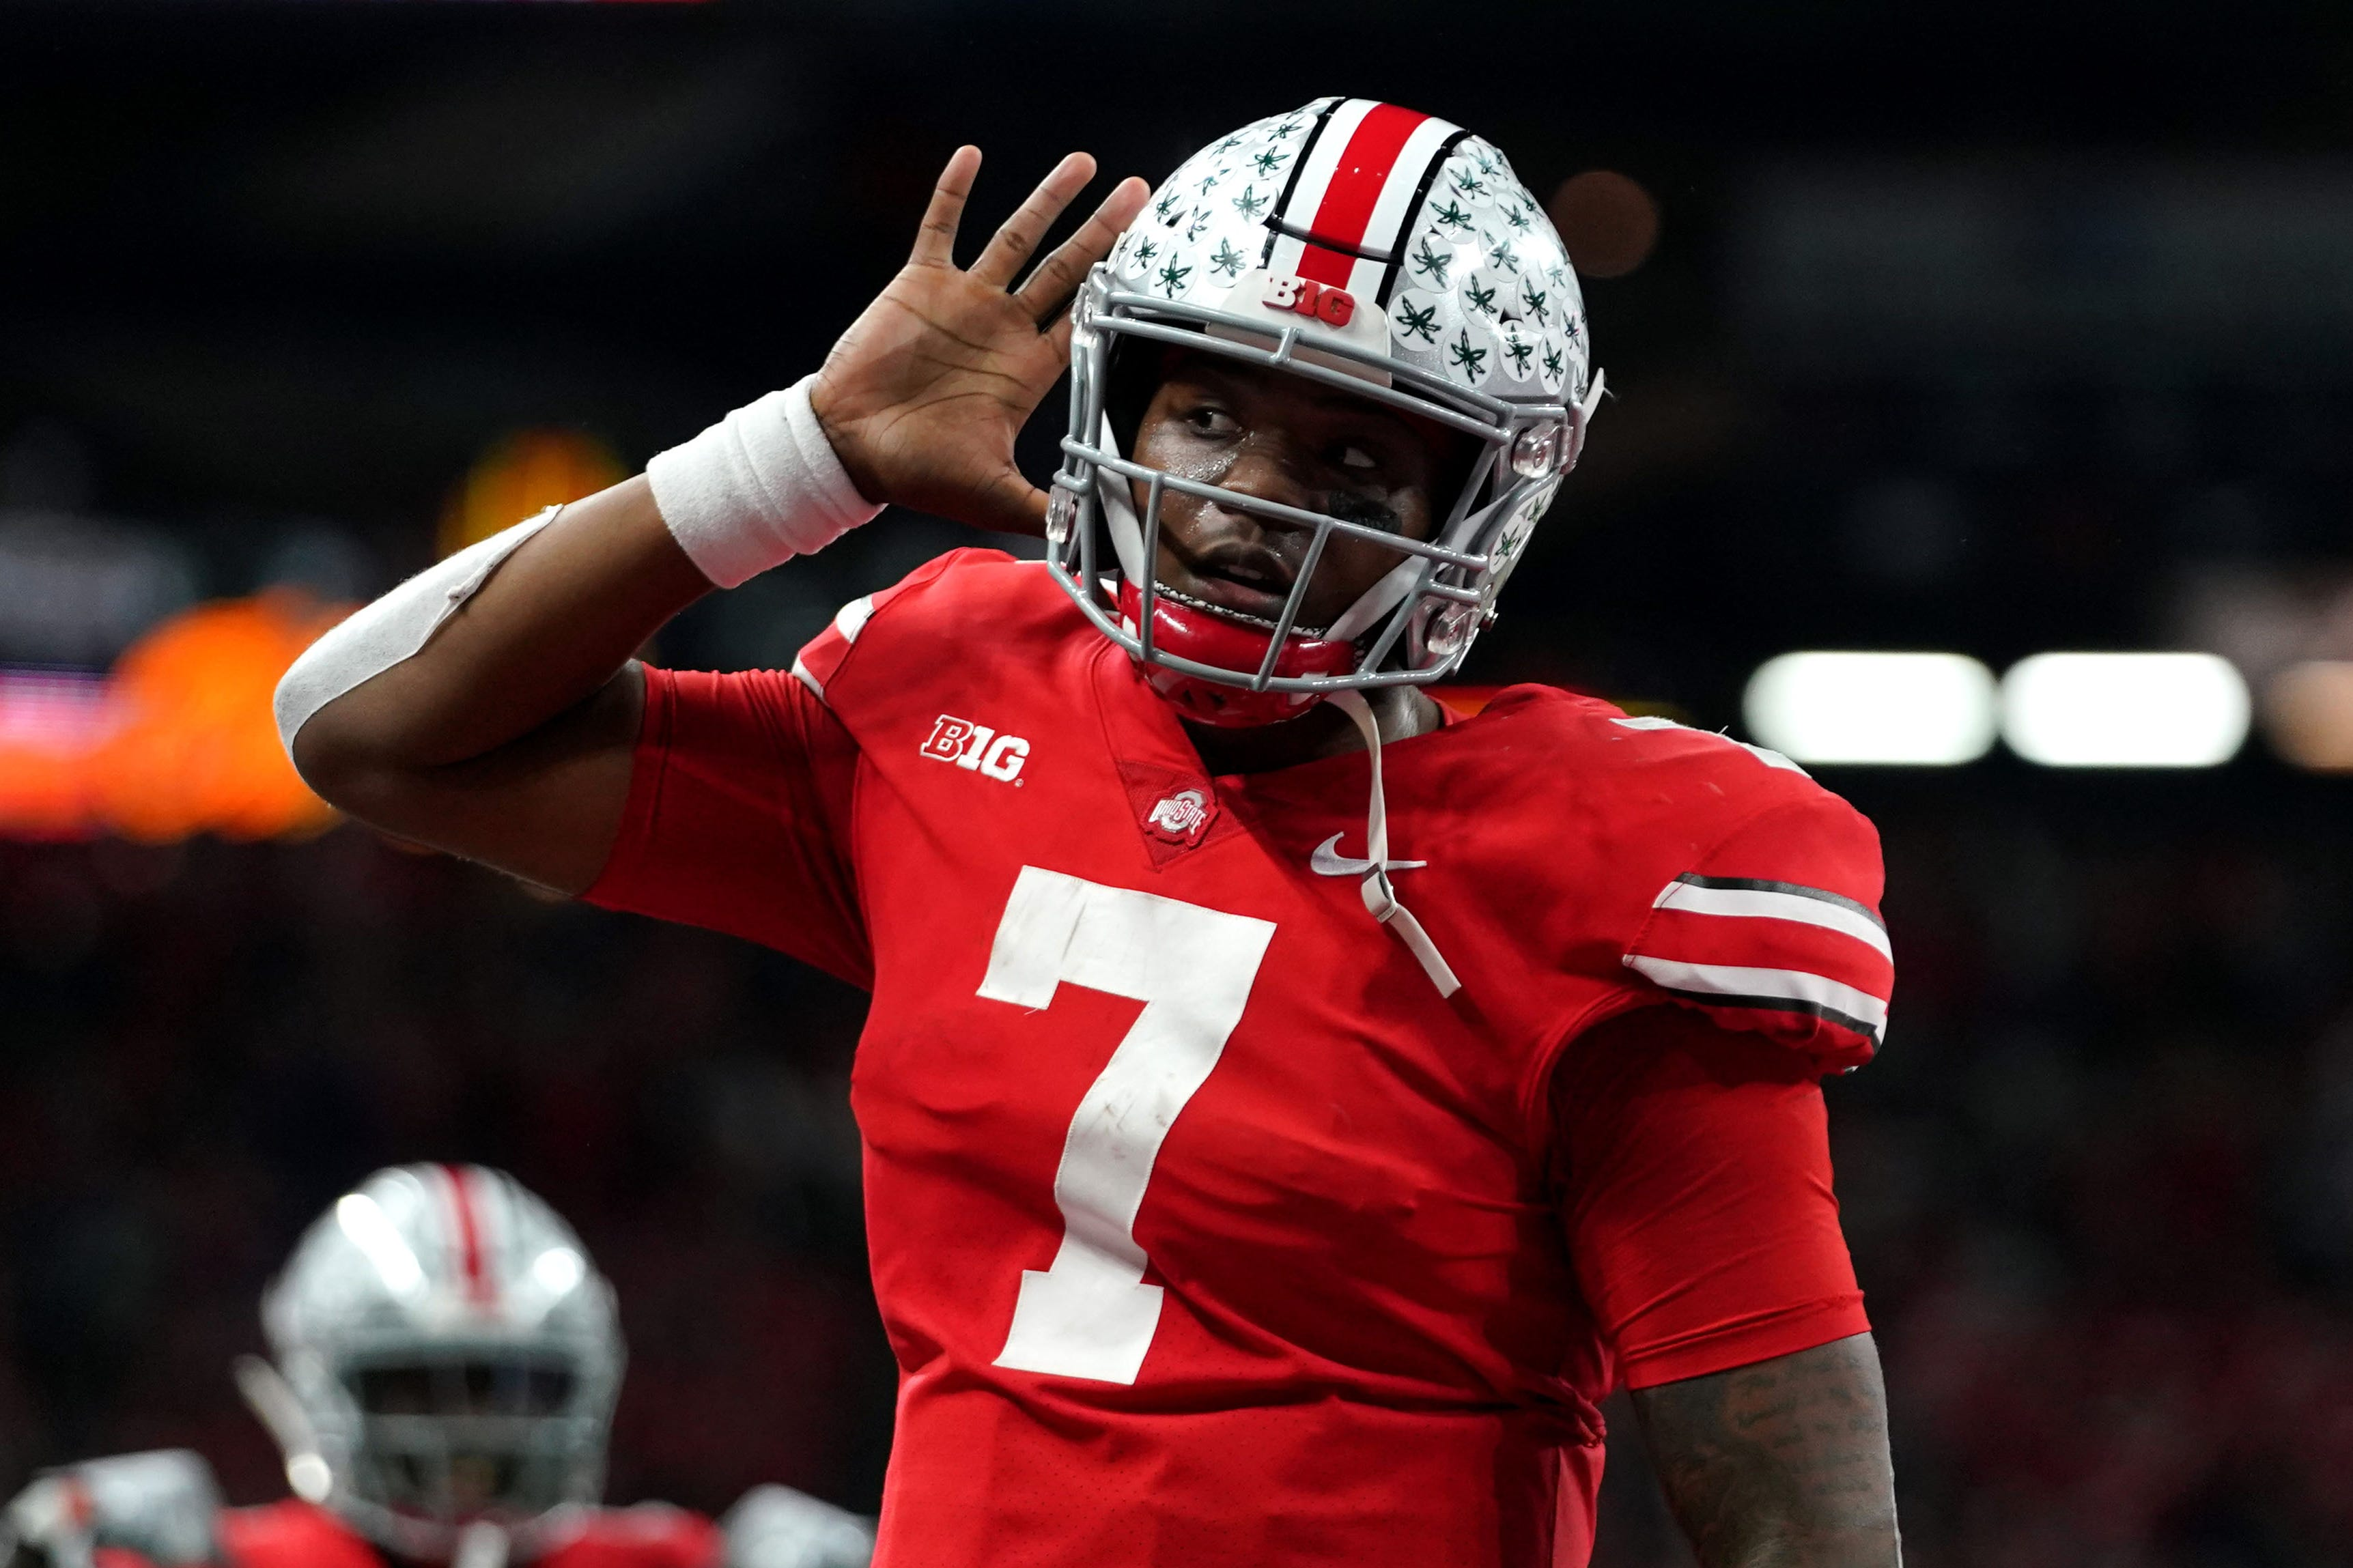 Dec 1, 2018; Indianapolis, IN, USA; Ohio State Buckeyes quarterback Dwayne Haskins (7) celebrates with teammates after throwing a touchdown pass against the Northwestern Wildcats in the first half in the Big Ten conference championship game at Lucas Oil Stadium. Mandatory Credit: Aaron Doster-USA TODAY Sports